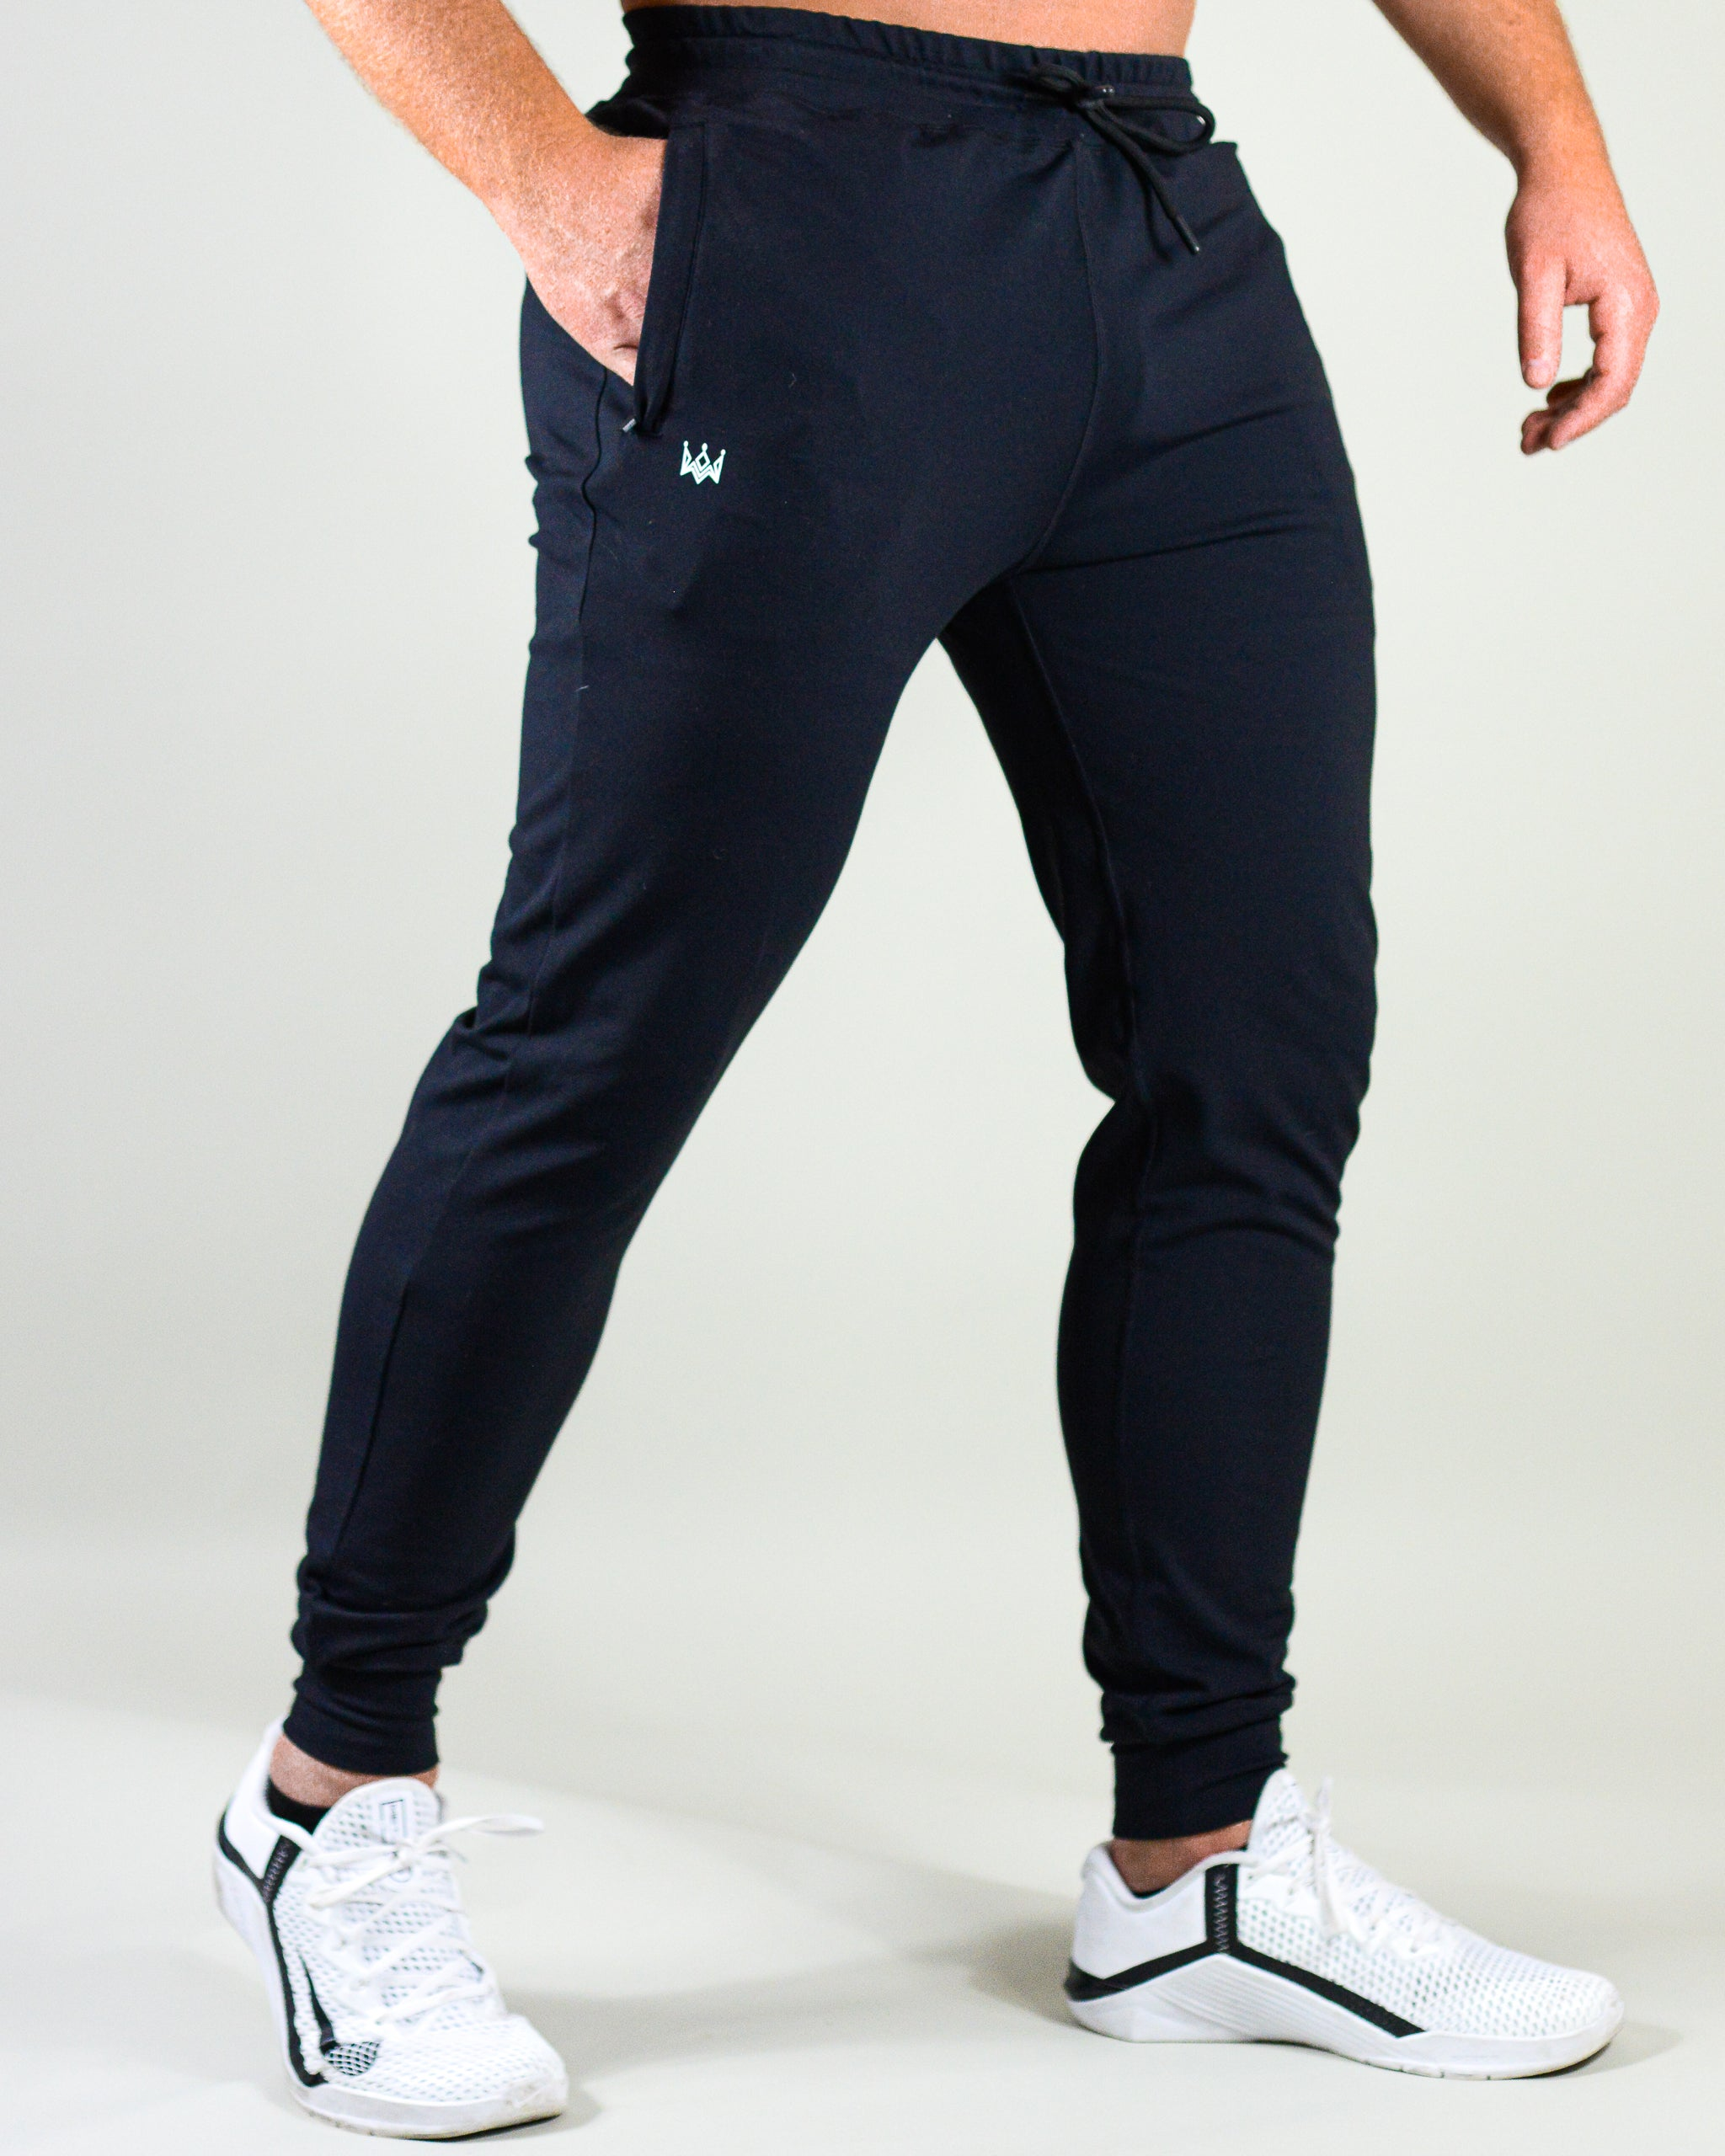 Royal Jogger - Black